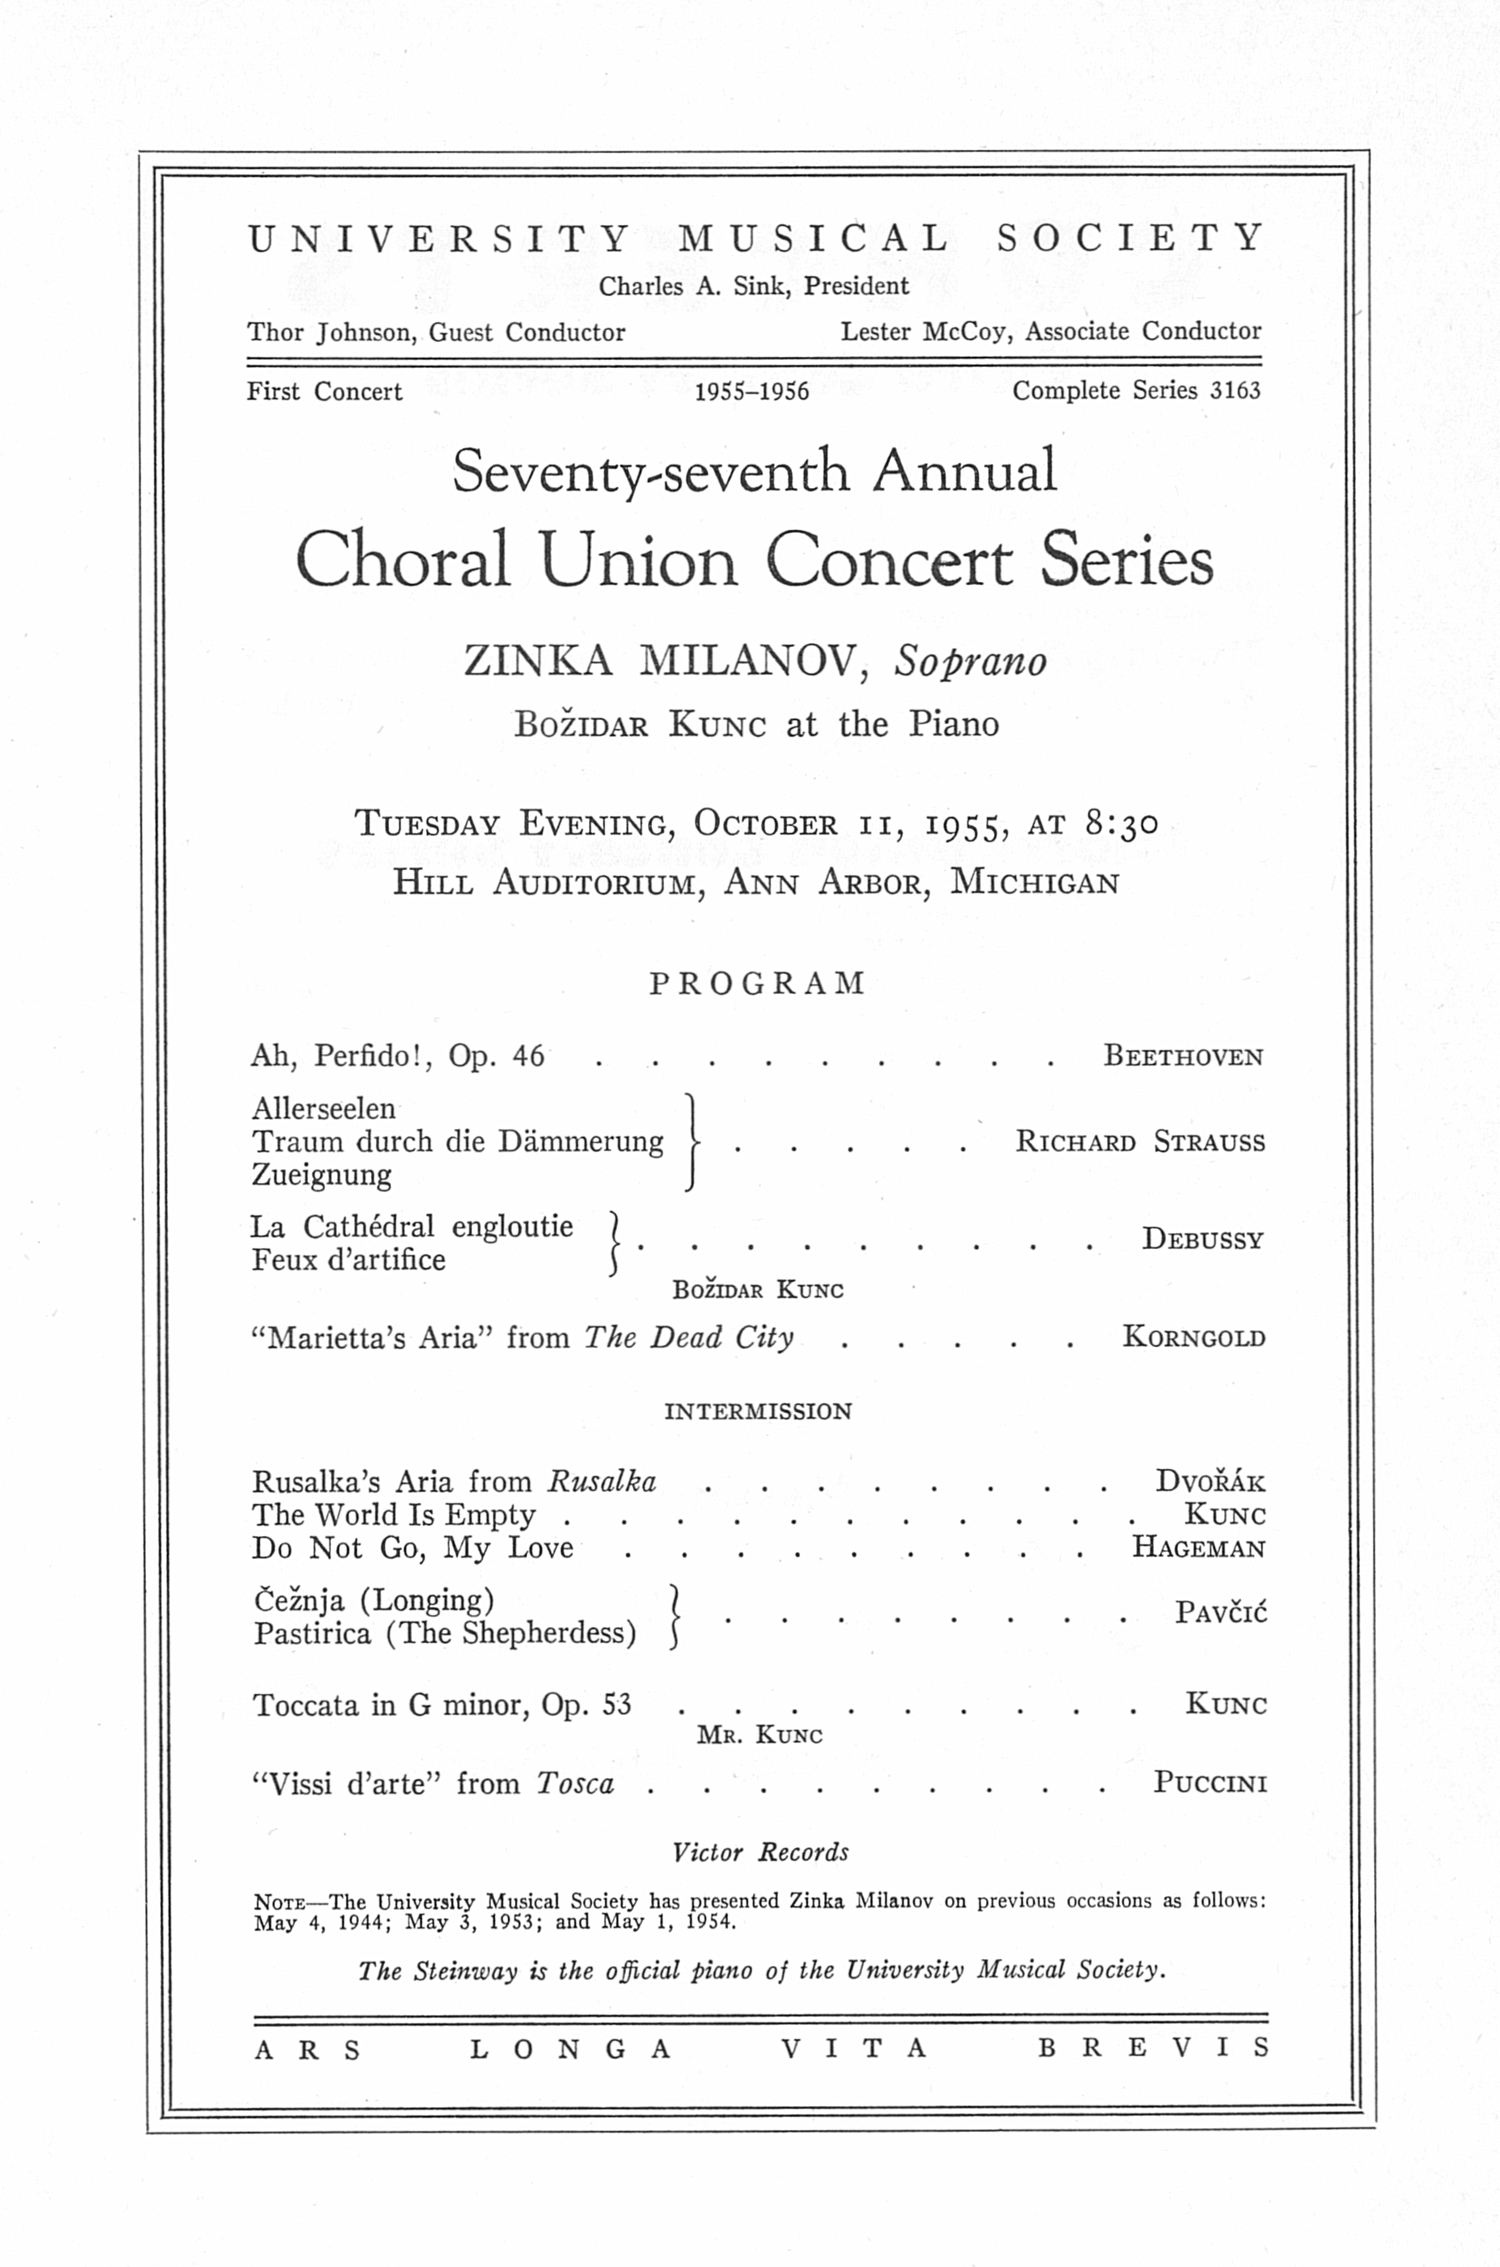 UMS Concert Program, October 11, 1955: Seventy-seventh Annual Choral Union Concert Series -- Zinka Milanov image